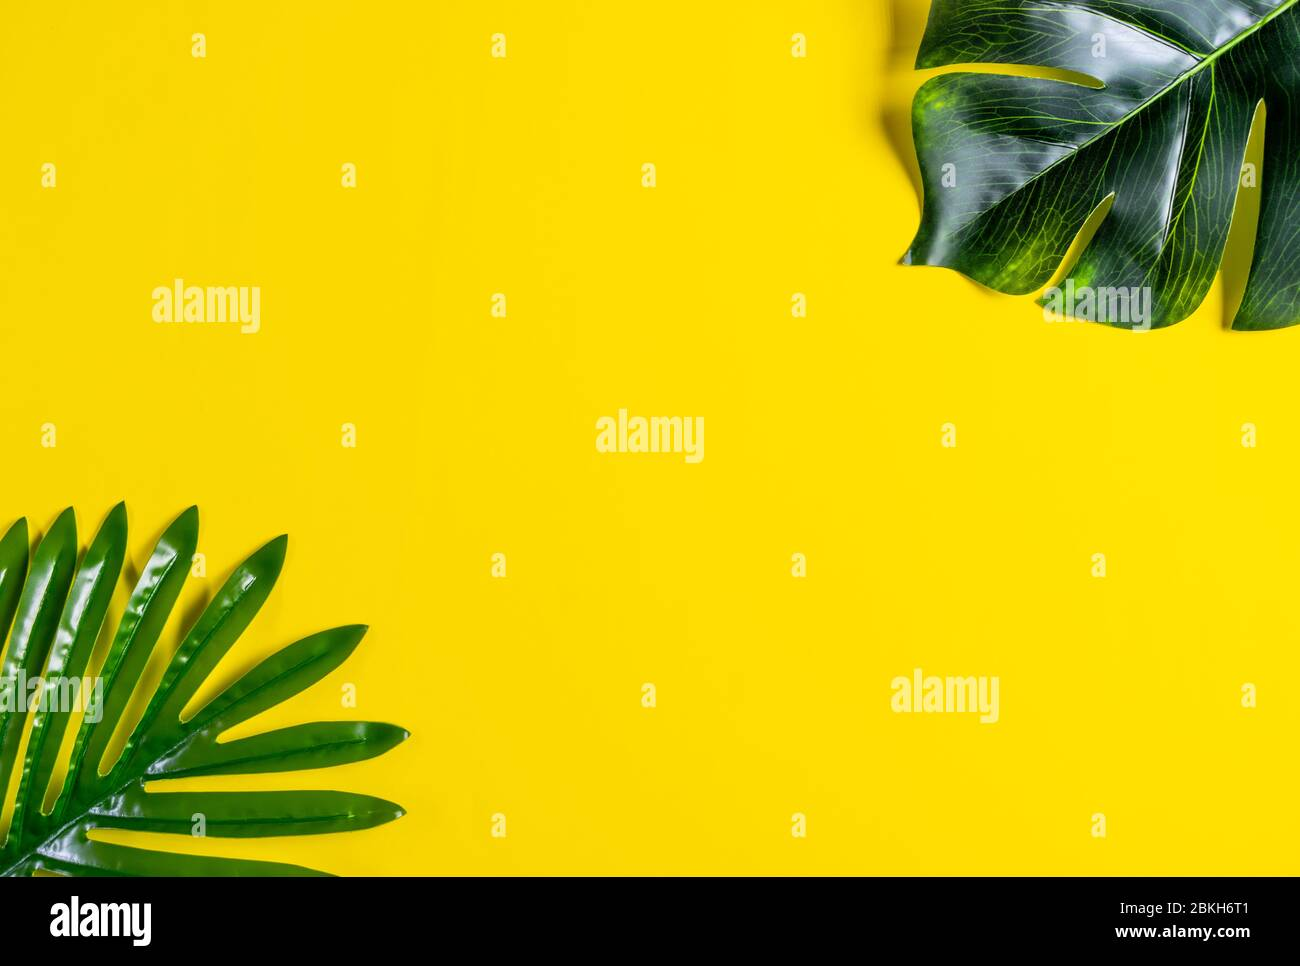 Summer Composition Tropical Monstera Leaf And Palm Leaves On Yellow Background Summer Concept Top View Copy Space Stock Photo Alamy Gradient abstract quirky botanical illustration set. alamy